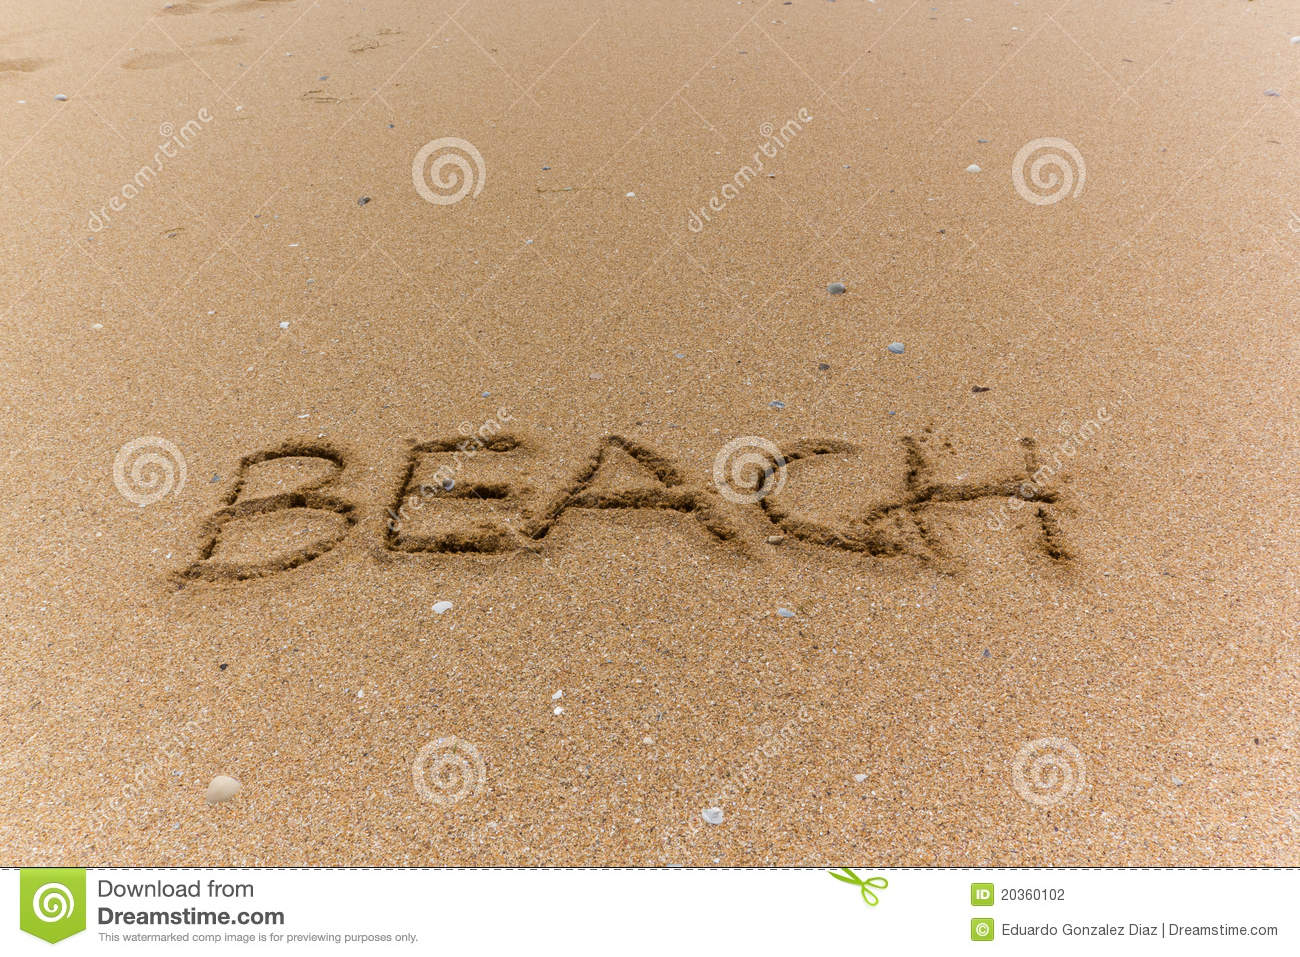 beaches essay When deciding on a location to vacation at, usually someone would choose between two different types of vacation spots a beach-like place or a mountainous.